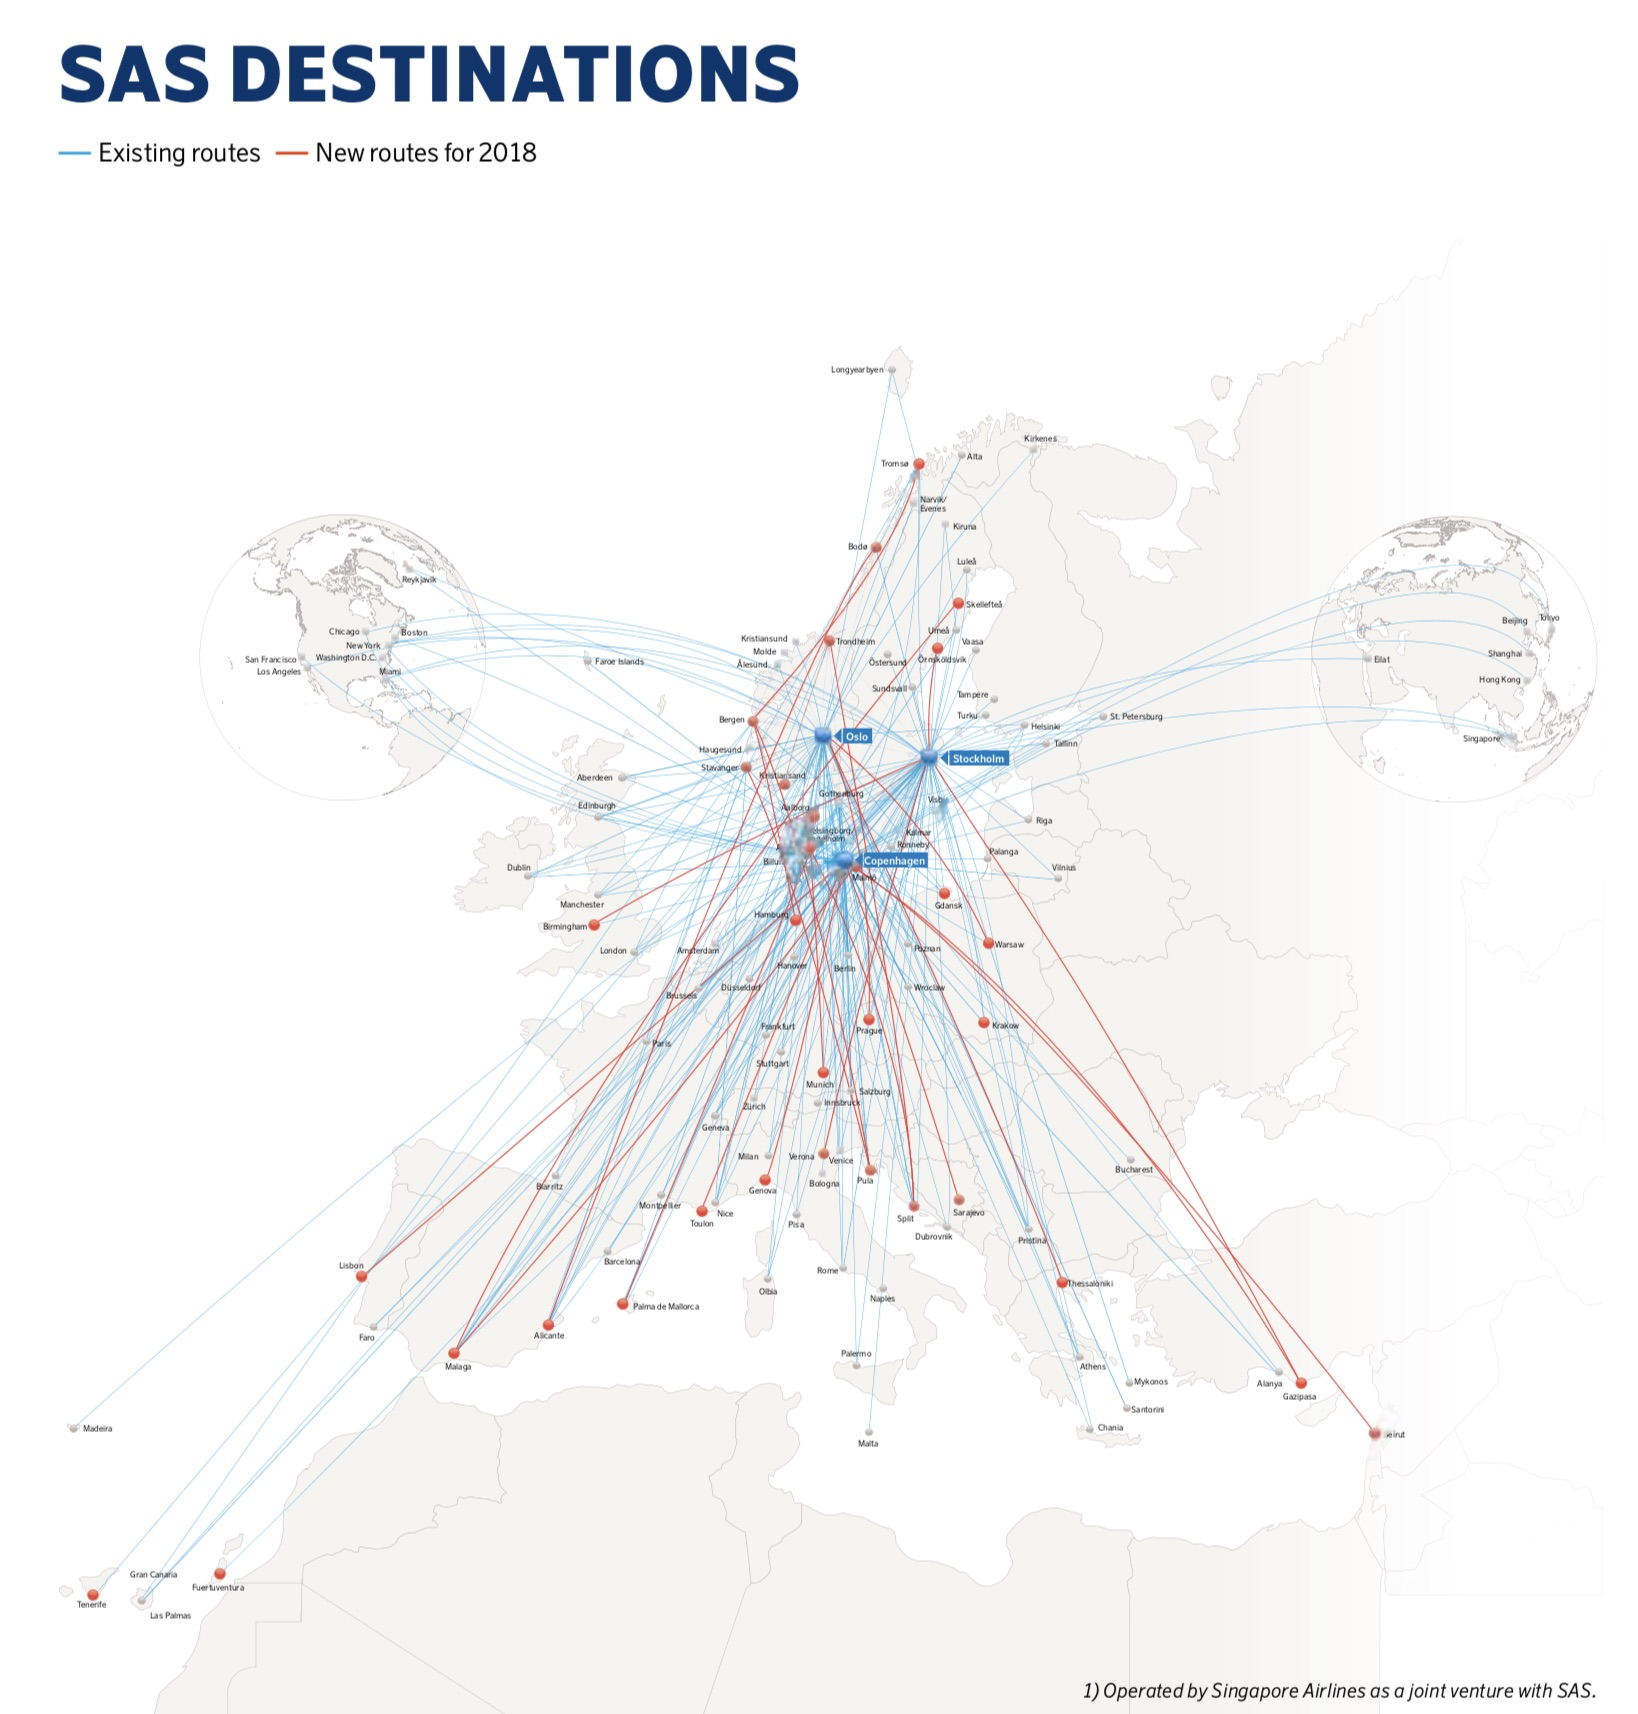 SAS reports strong earnings in peak seasons | World Airline News